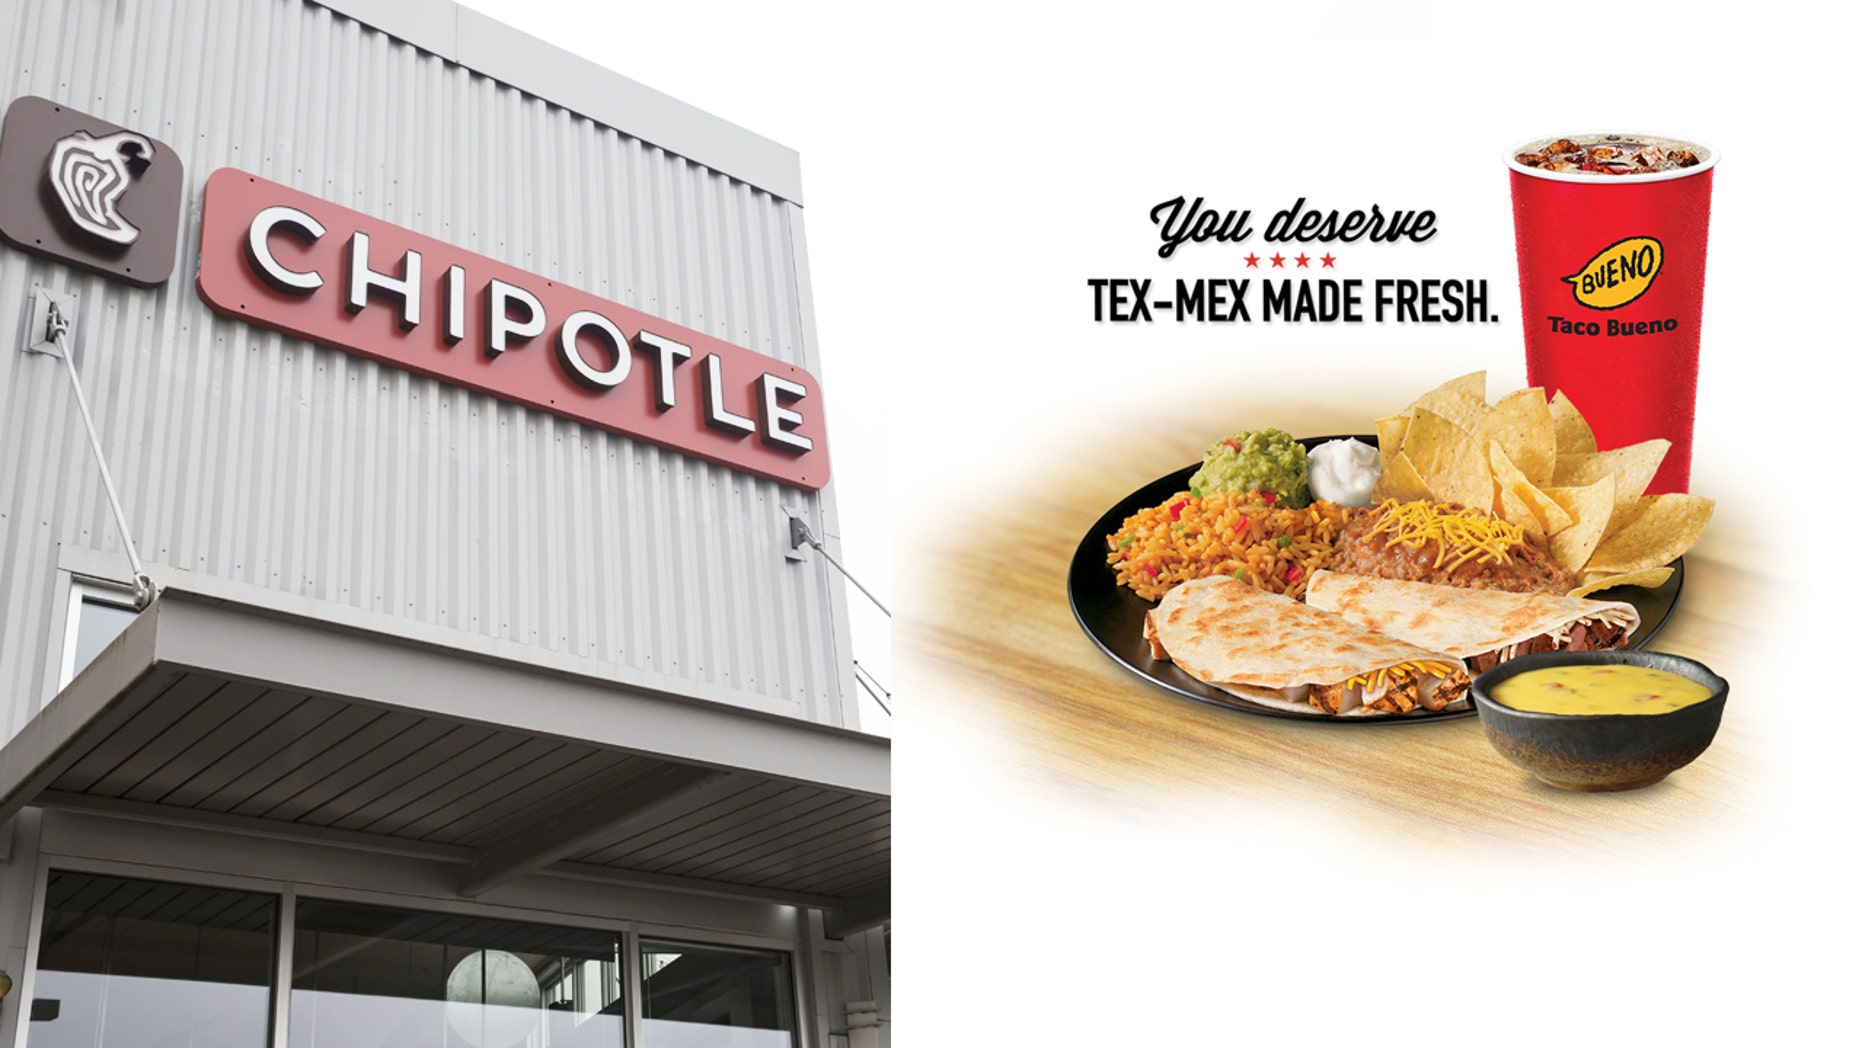 Chipotle was bested by Taco Bueno as America's favorite Mexican-style chain restaurant.